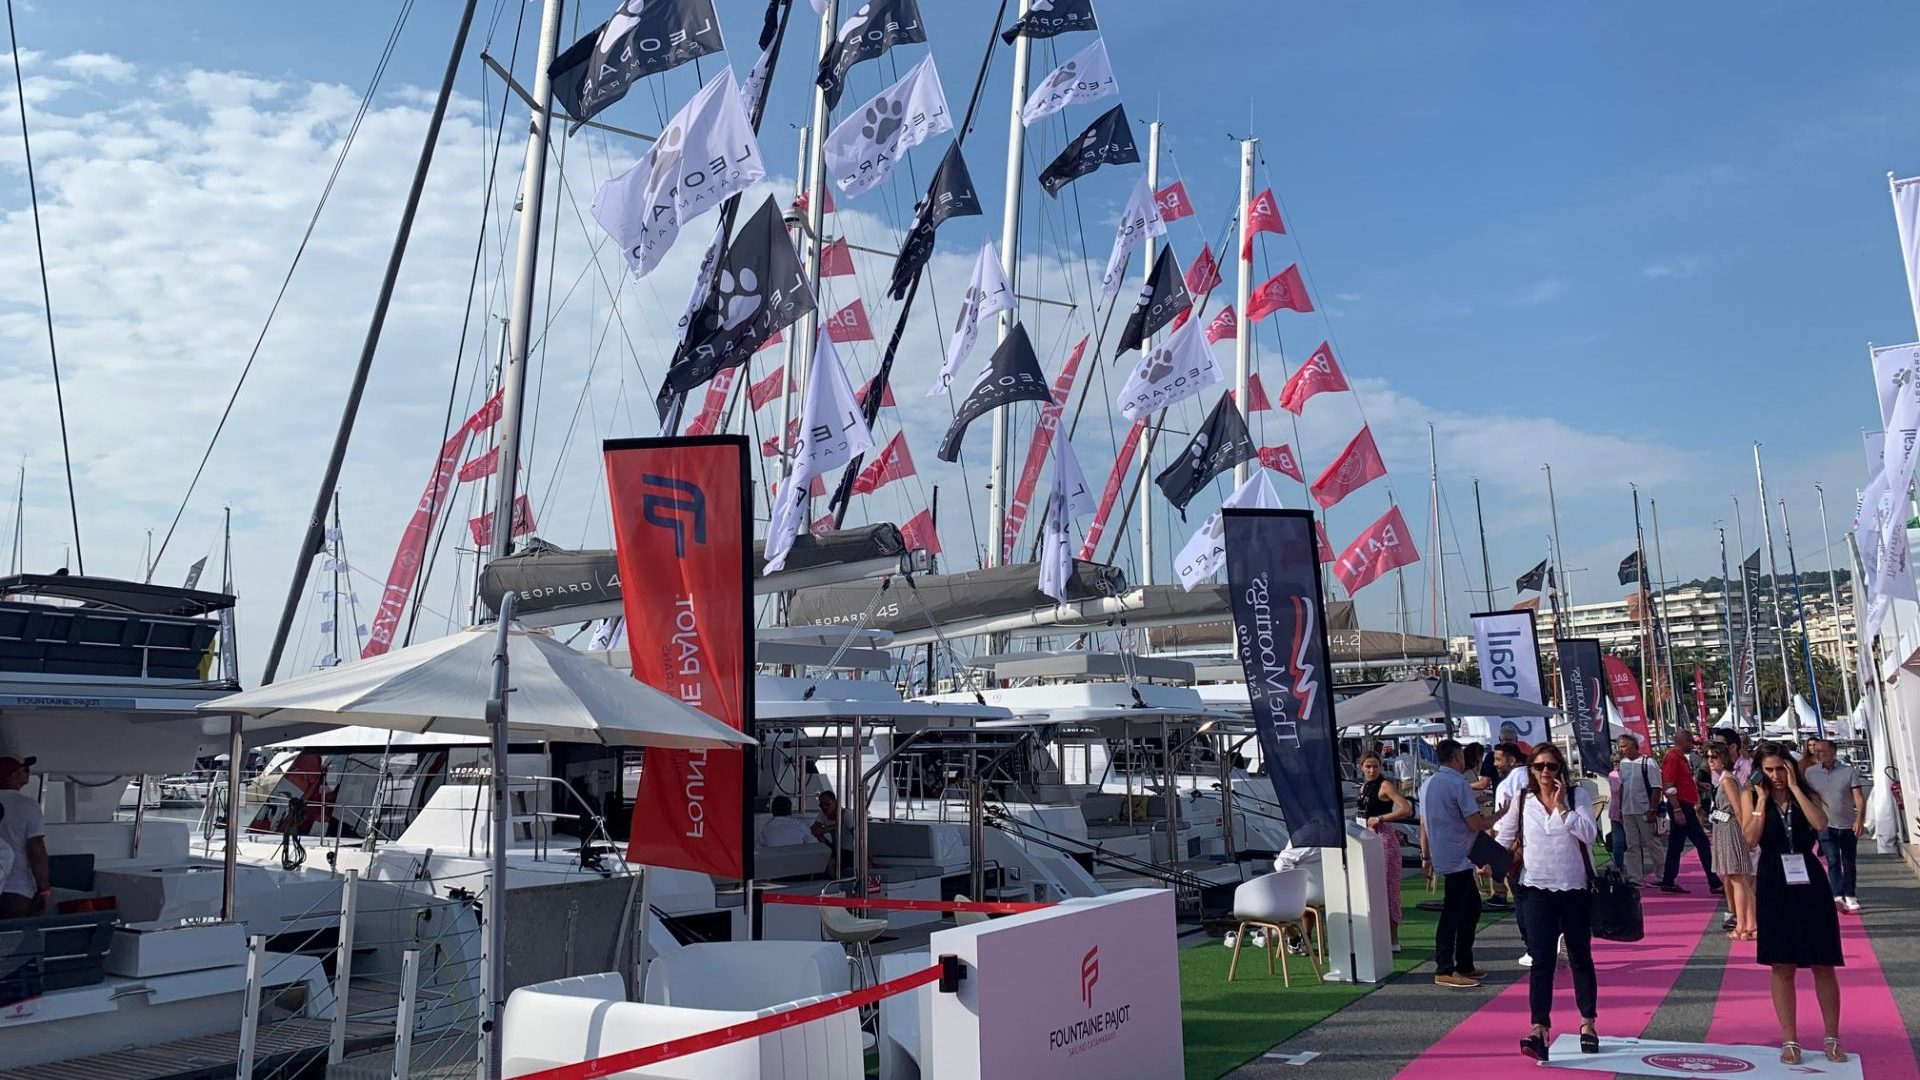 Cannes Yachting Festival. Photo by Richard Stephens